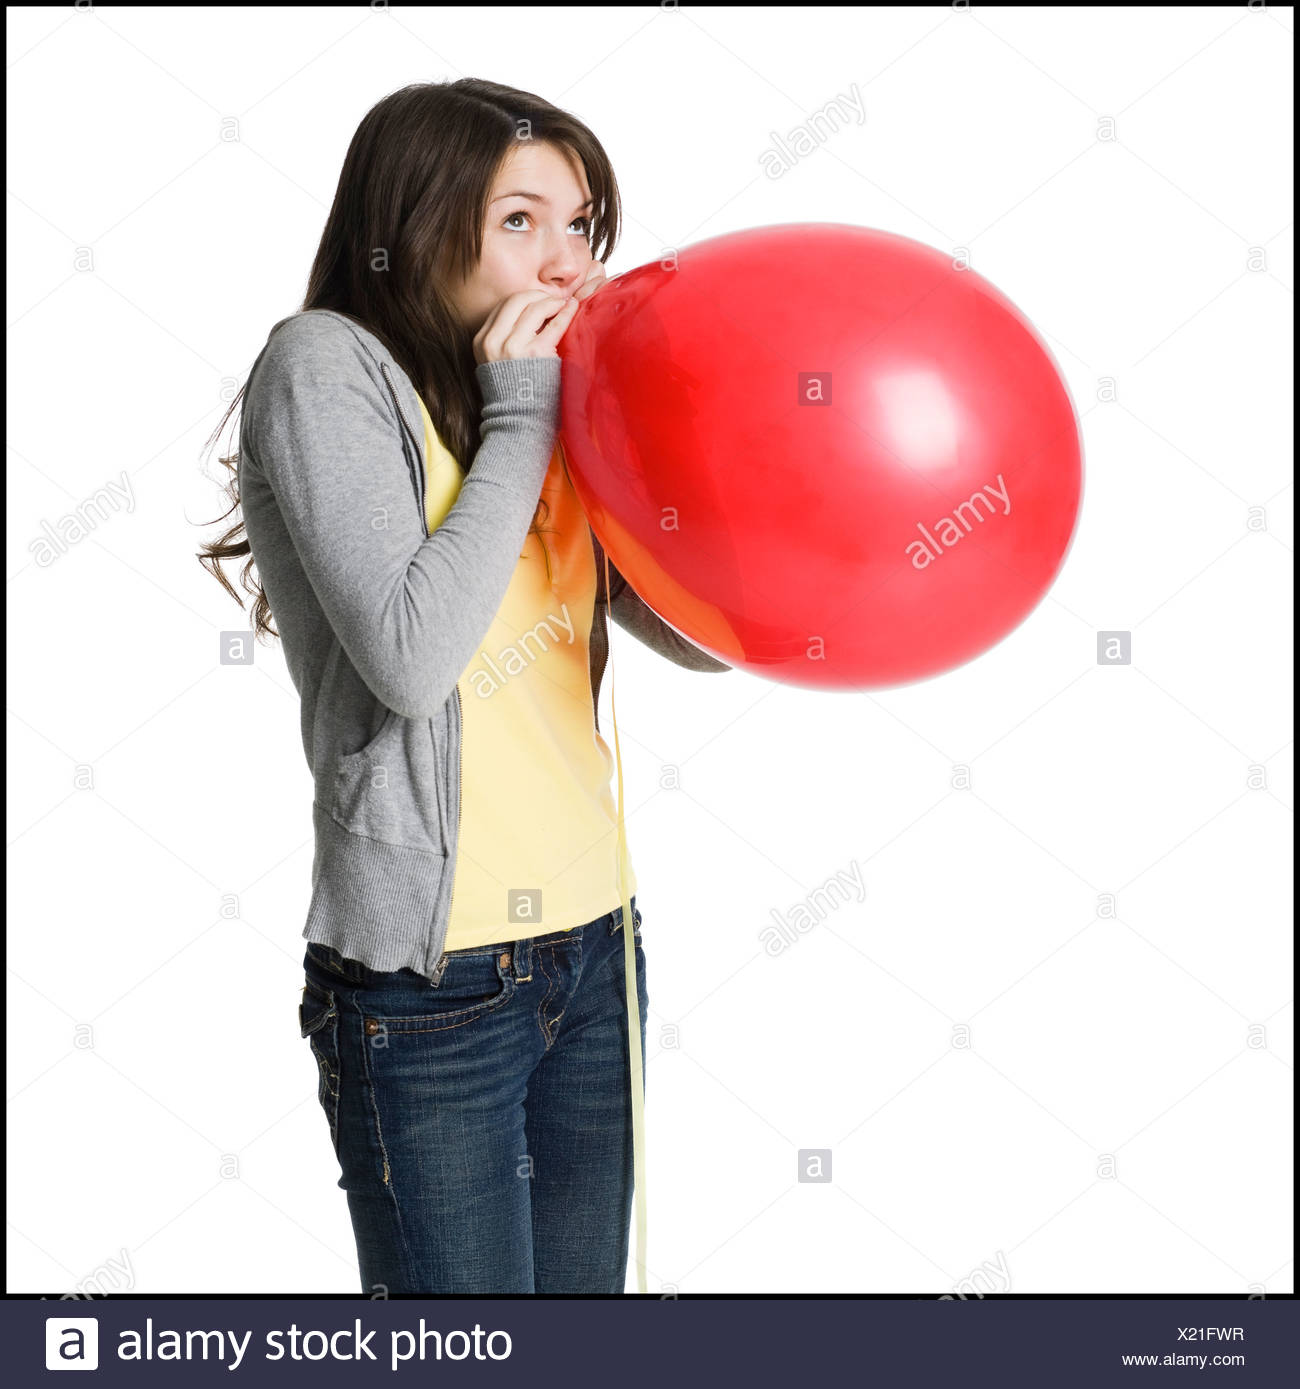 young woman blowing up a balloon - Stock Image